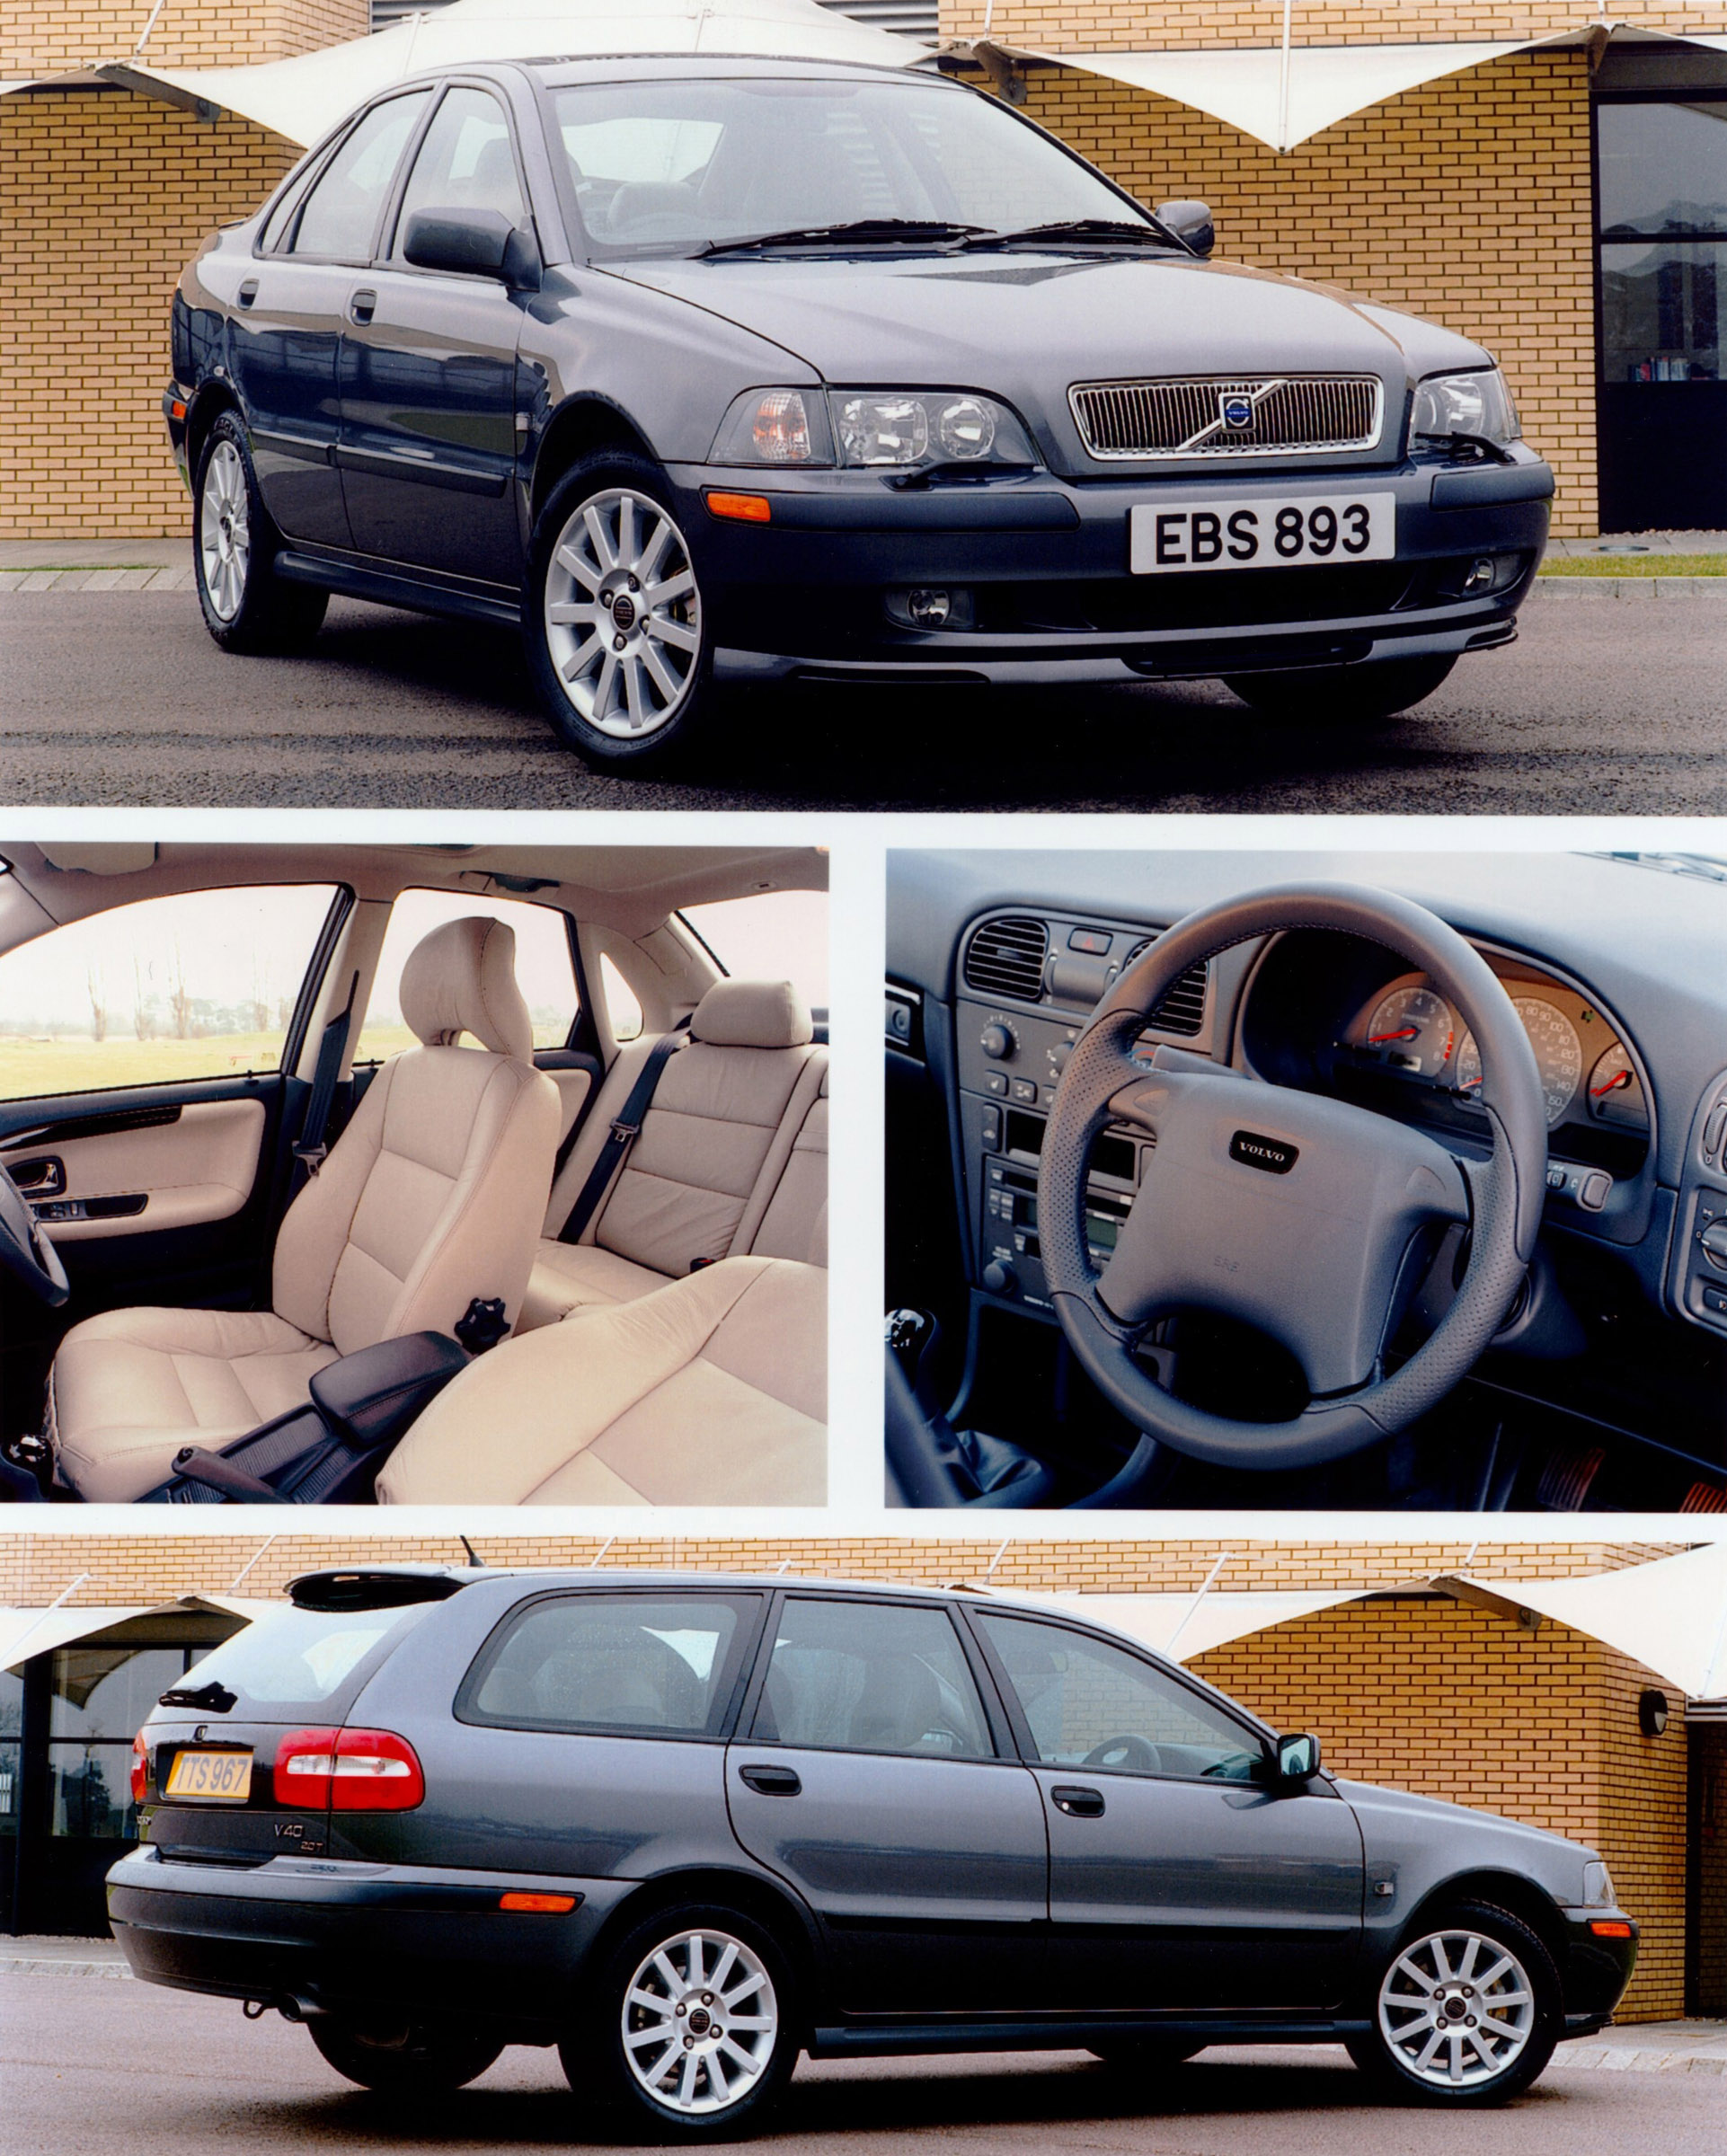 Volvo S40 Wallpaper: 2001 Volvo S40